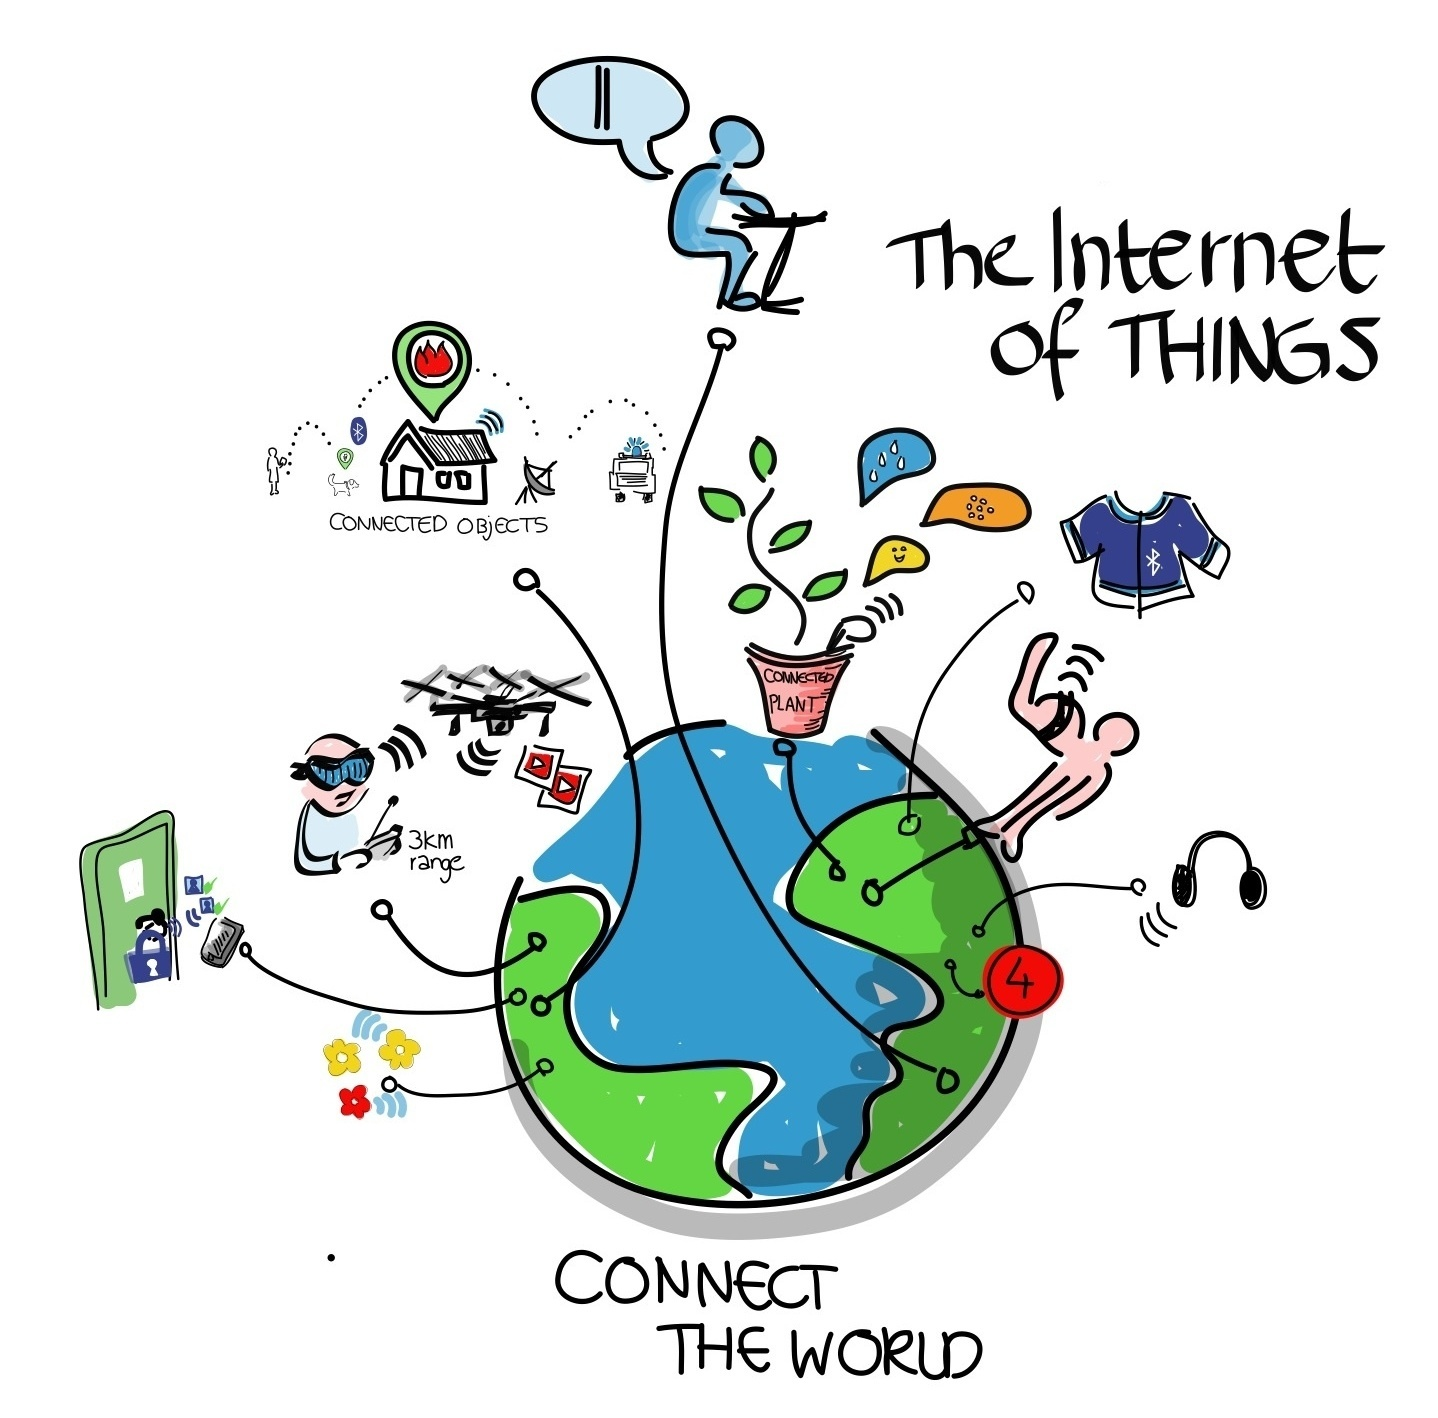 internet connected to everything